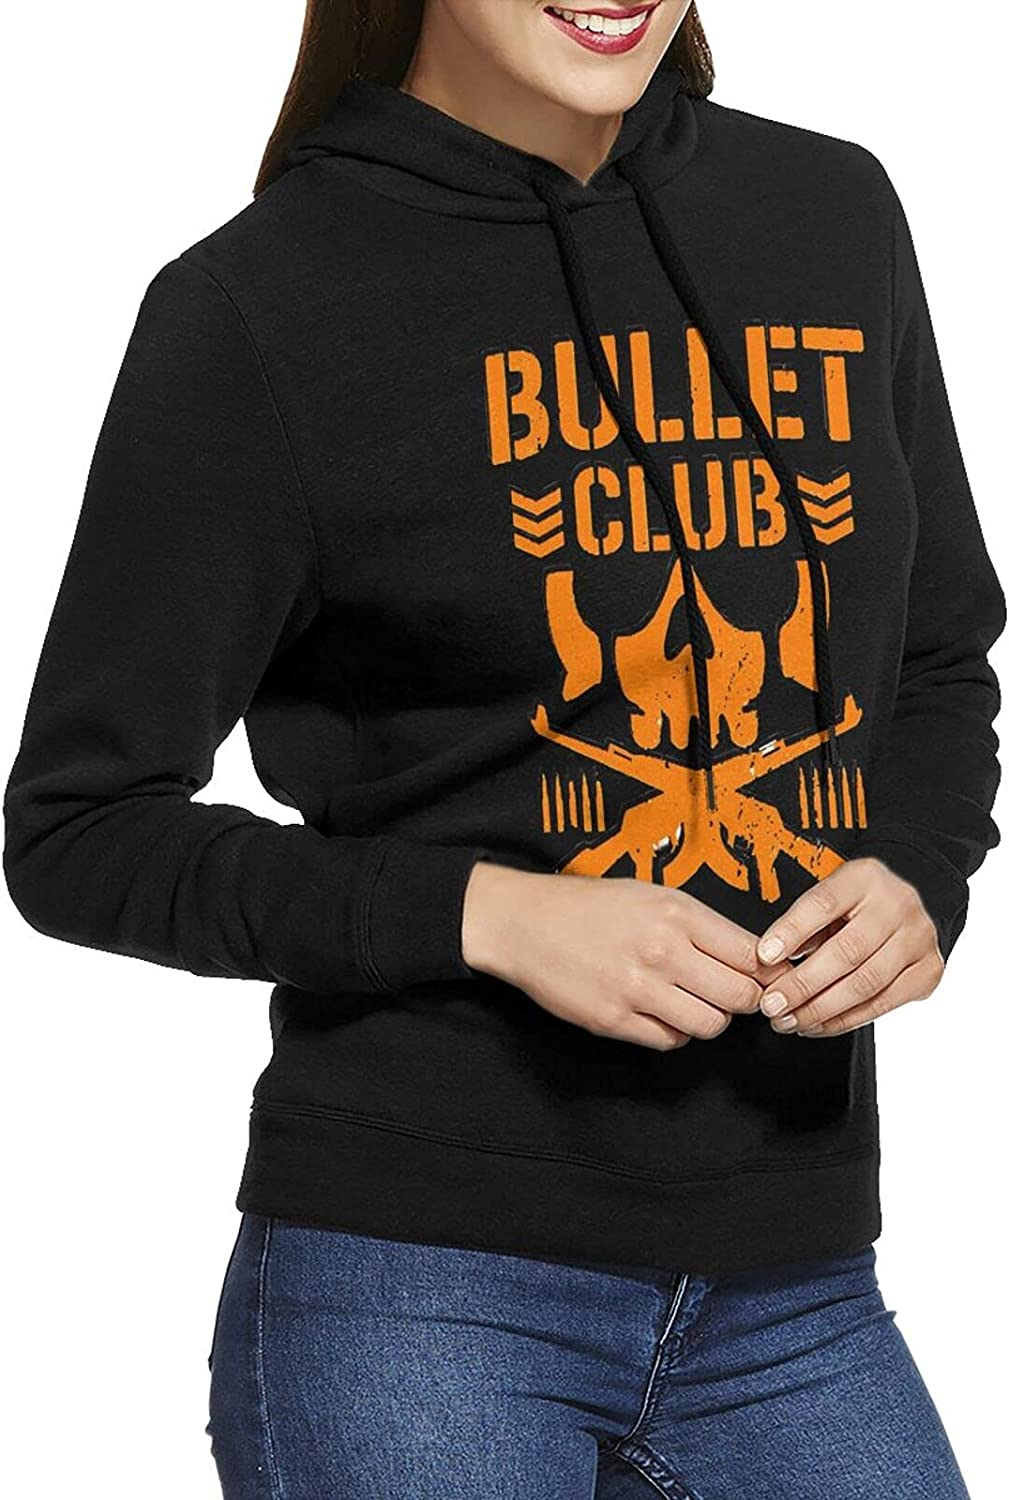 shipfree Dudkc Directly managed store Bullet Club Womens Hoodie Sweatshirt Breathable